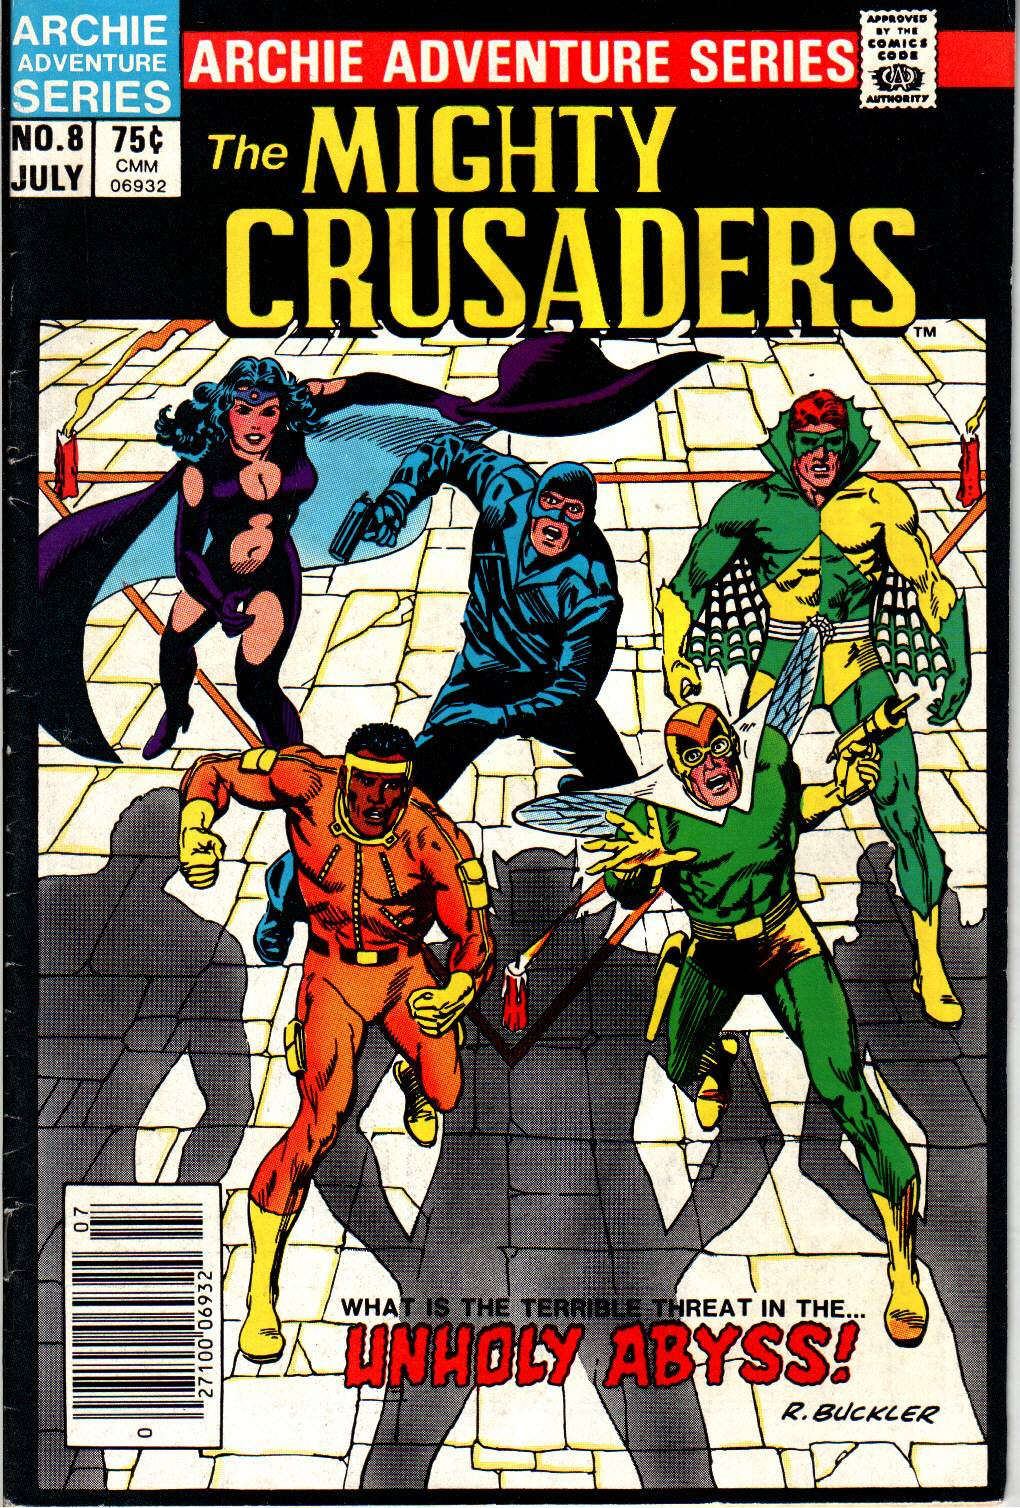 The All New Adventures of the Mighty Crusaders 8 Page 1